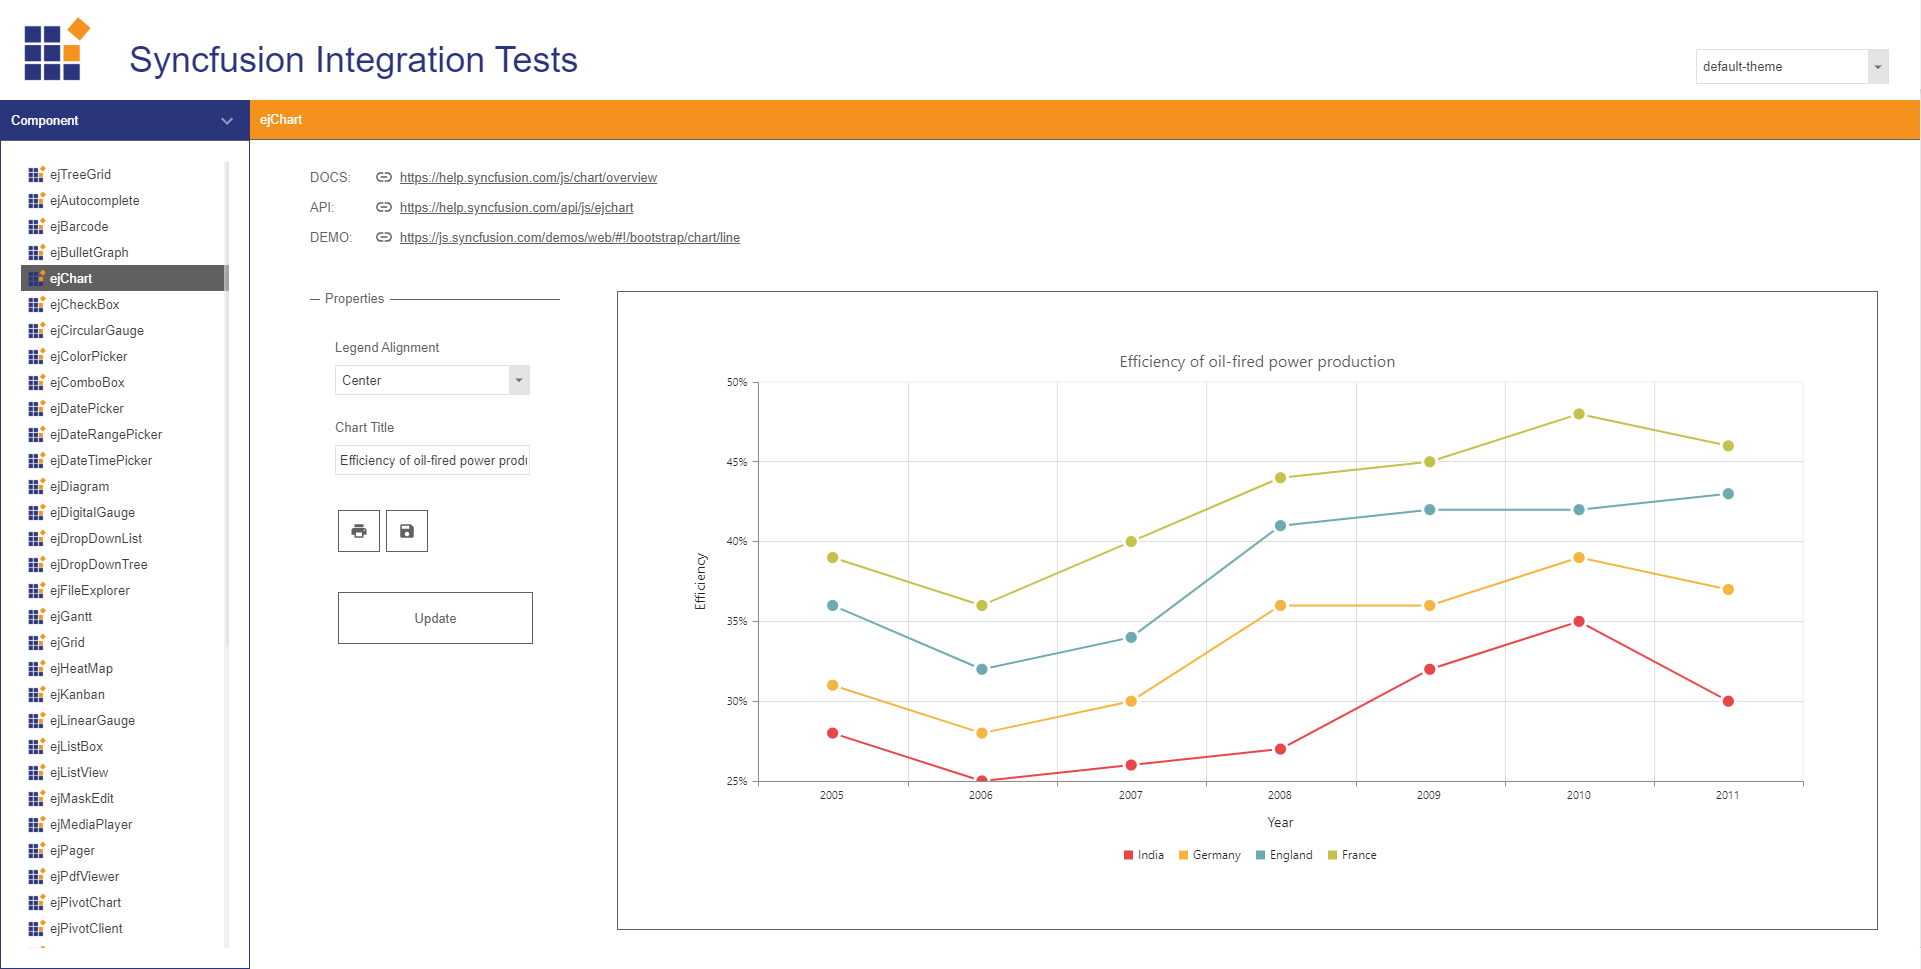 syncfusion chart in wisej demo project